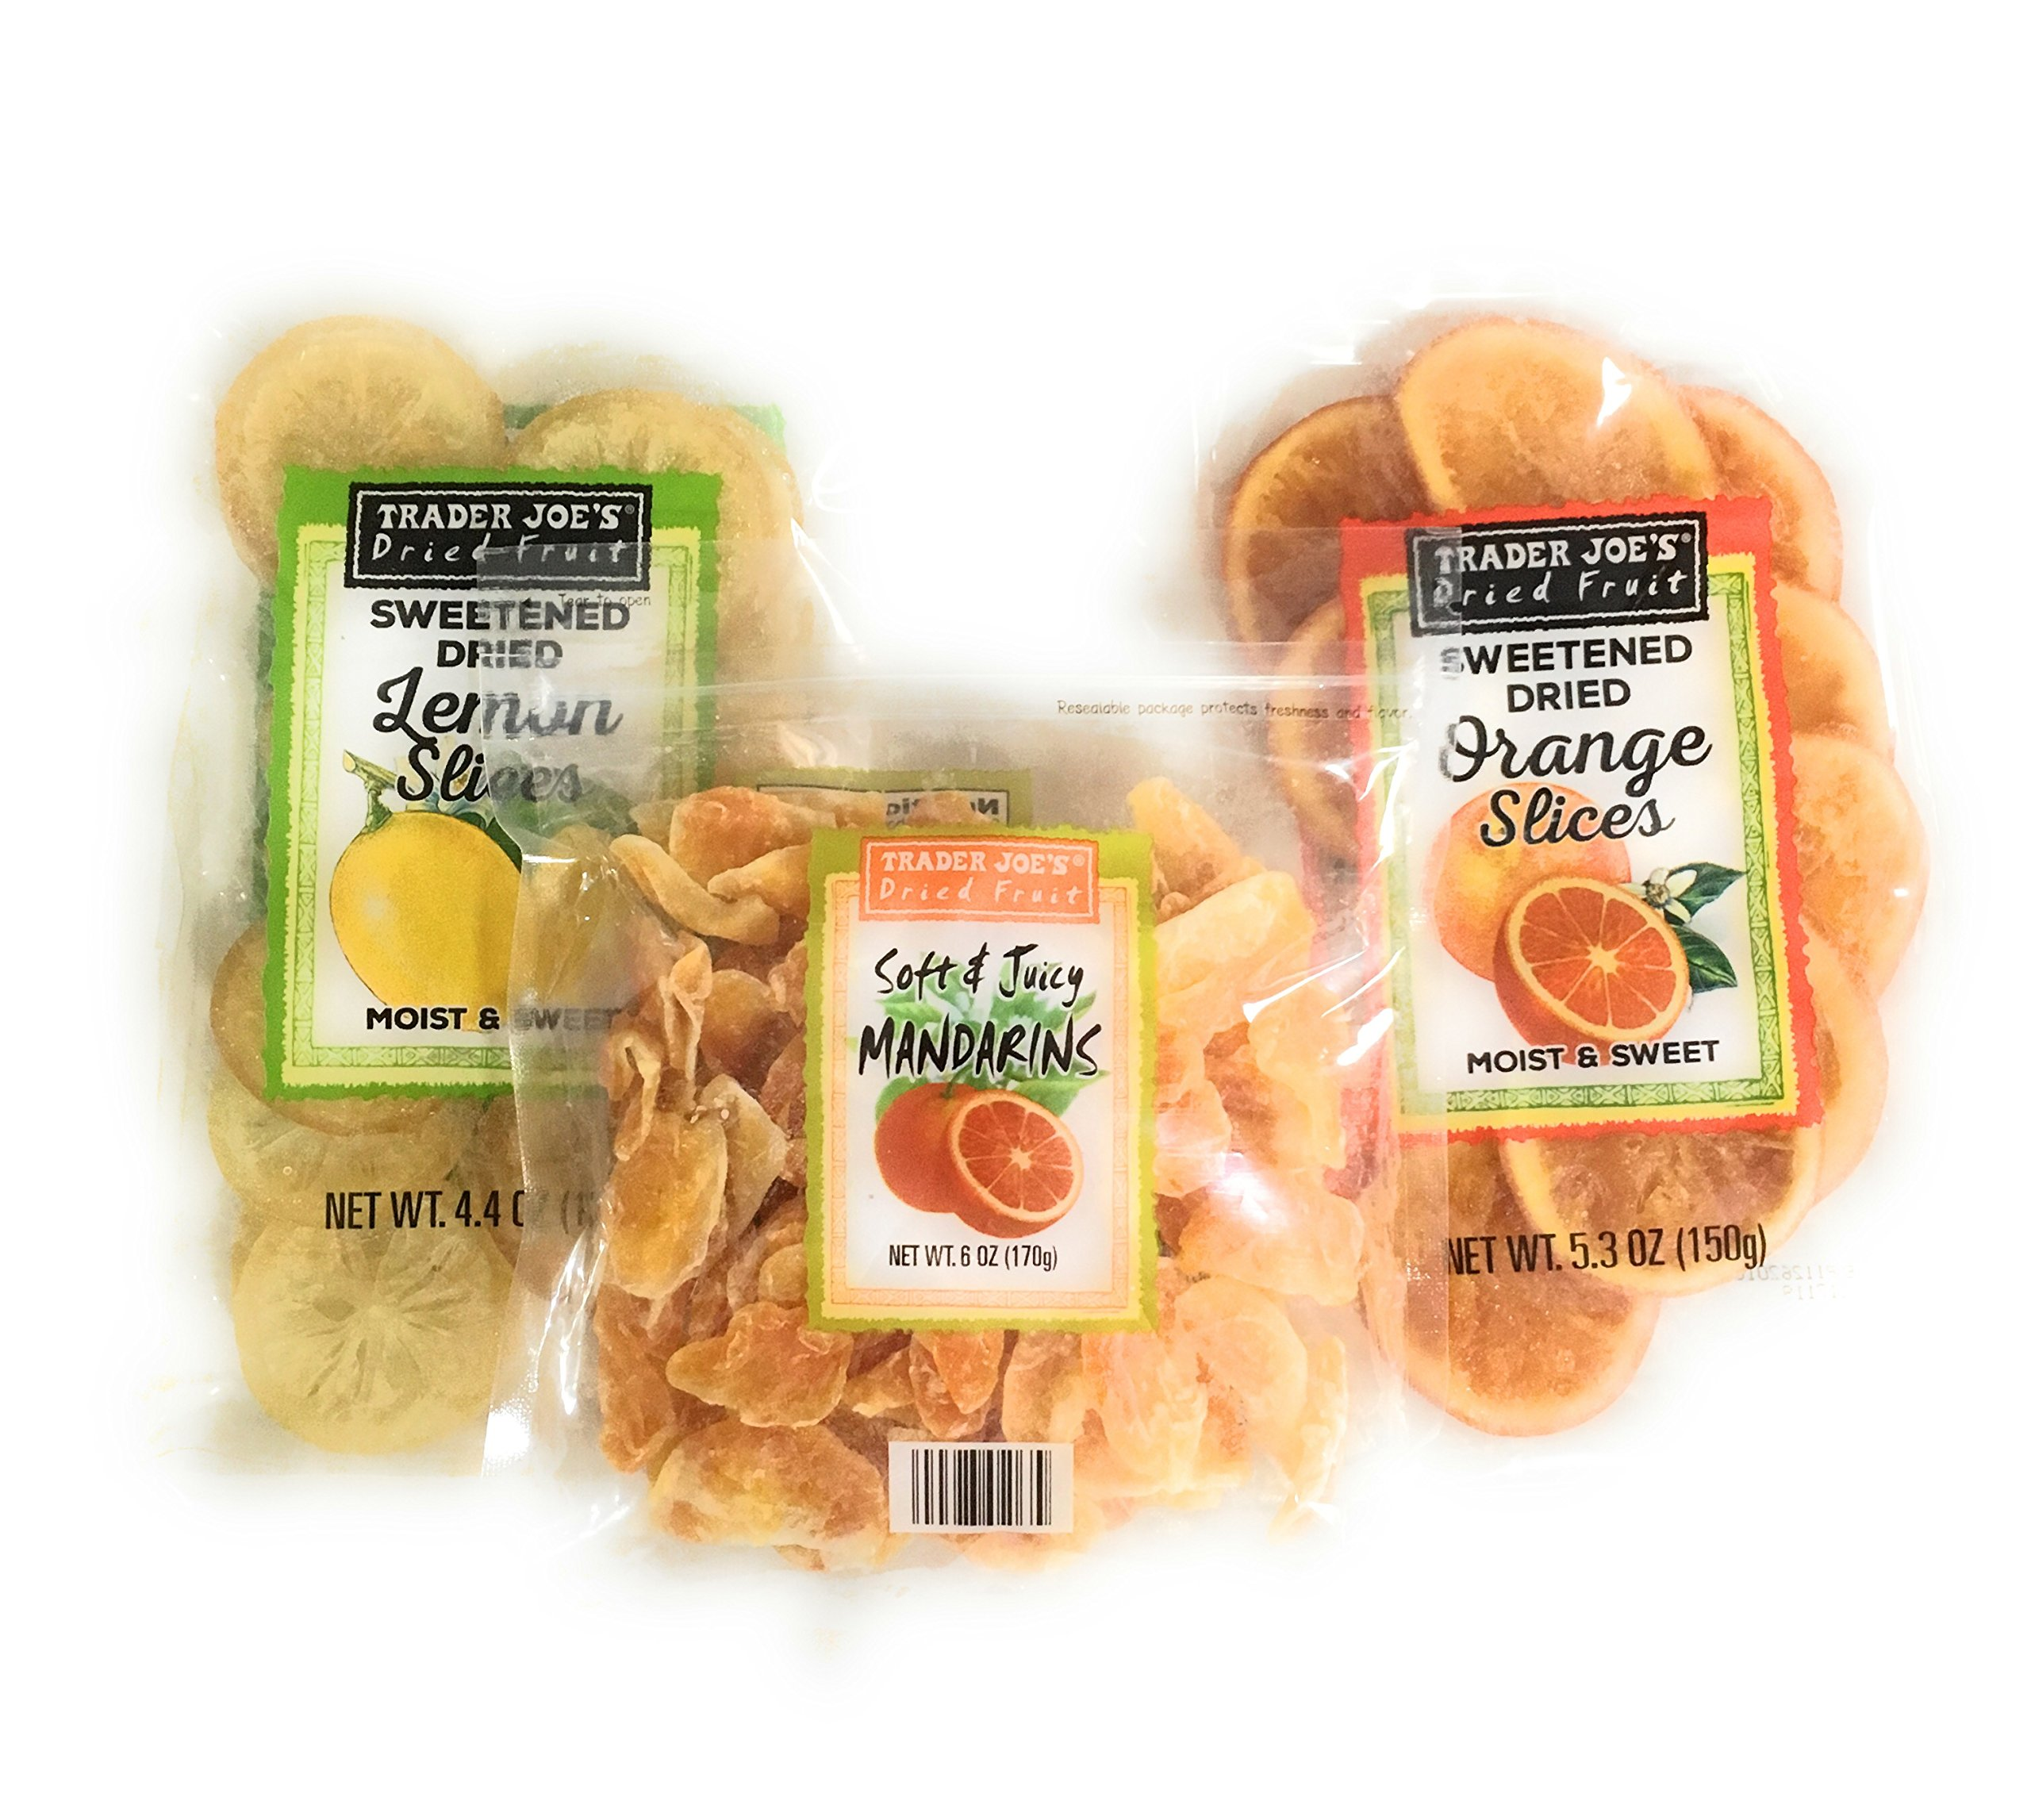 Trader Joes Dried Fruit Snack Bundle - Individual Variety Pack Featuring a Mix of Sweetened Lemon, Juicy Mandarin Orange, and Tasty Orange Slices - A Natural Healthy Snack for Adults and Kids by Trader Joe's